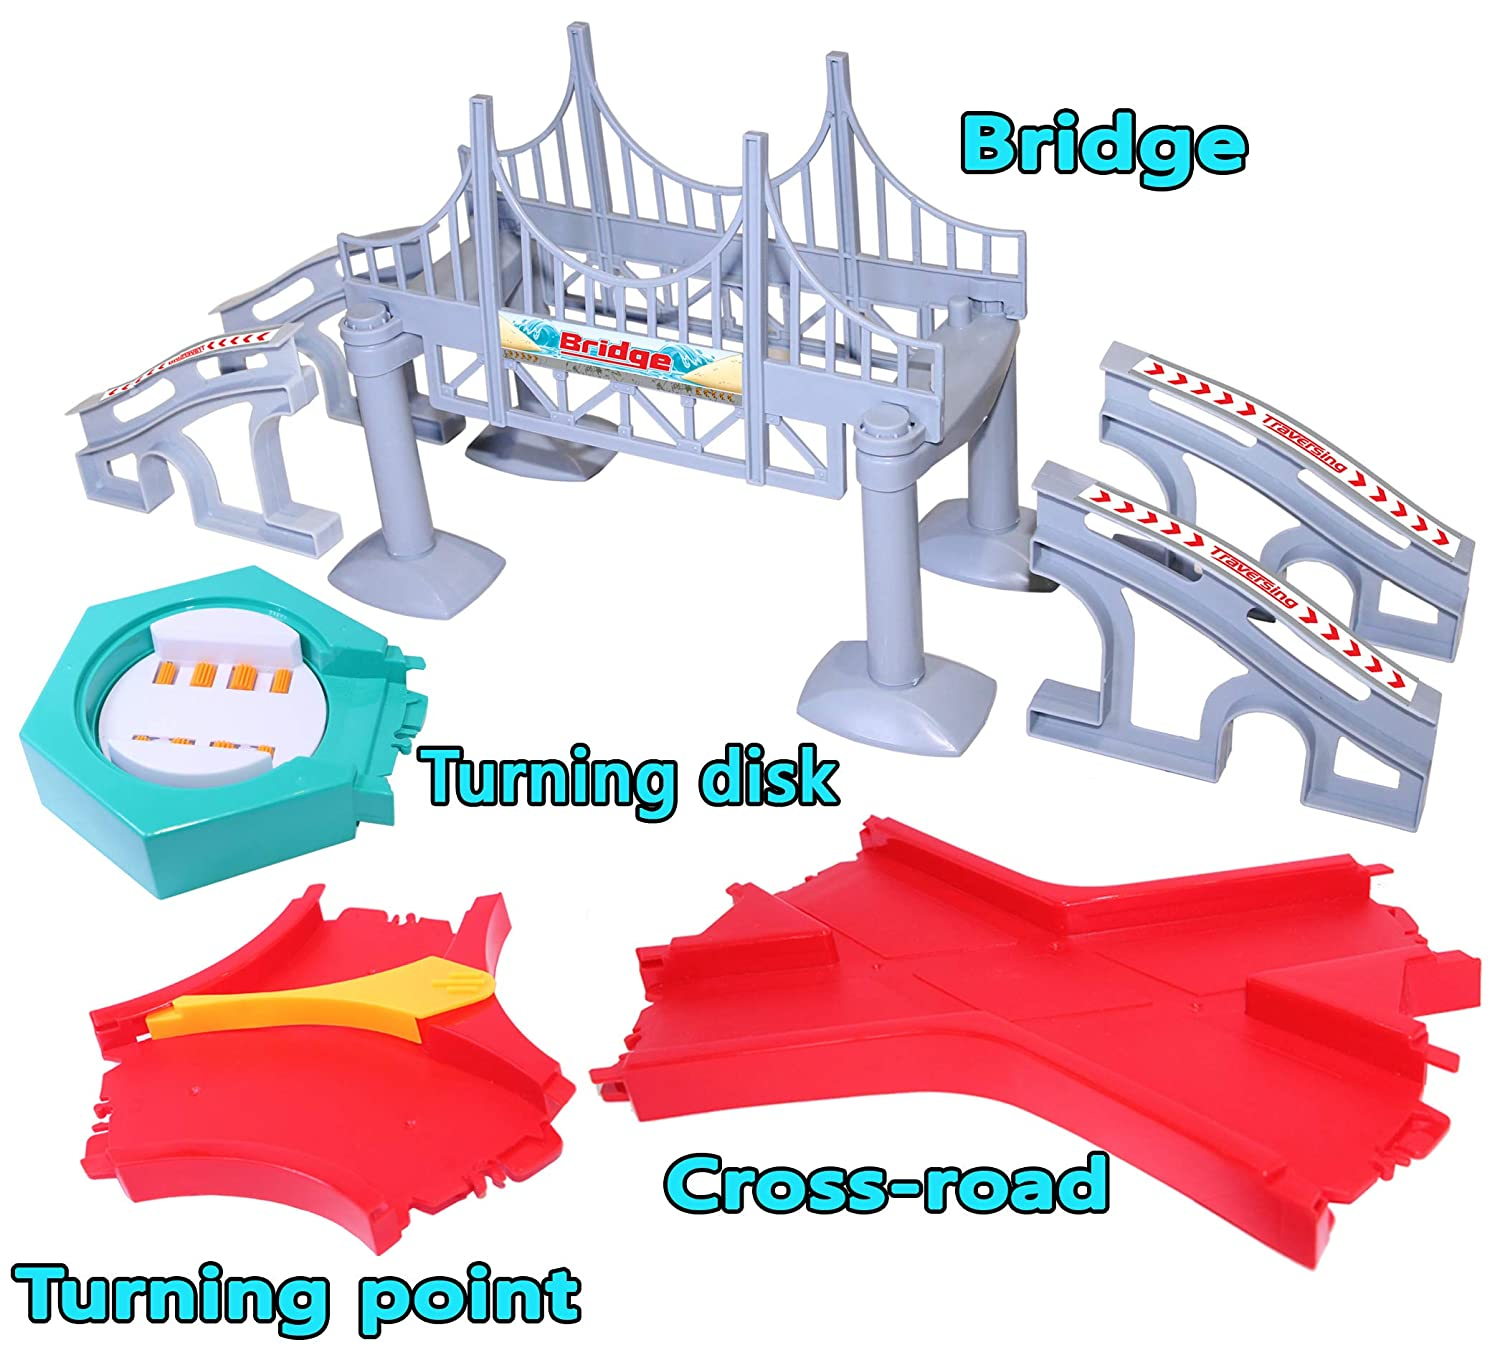 HapiSimi Accessories Set for Magic Tracks, Including 1 Bridge, 1 X-Crossroad, 1 Turning Point, 1 Turning Plate, Compatible with Magic Tracks, Neo Twister Track